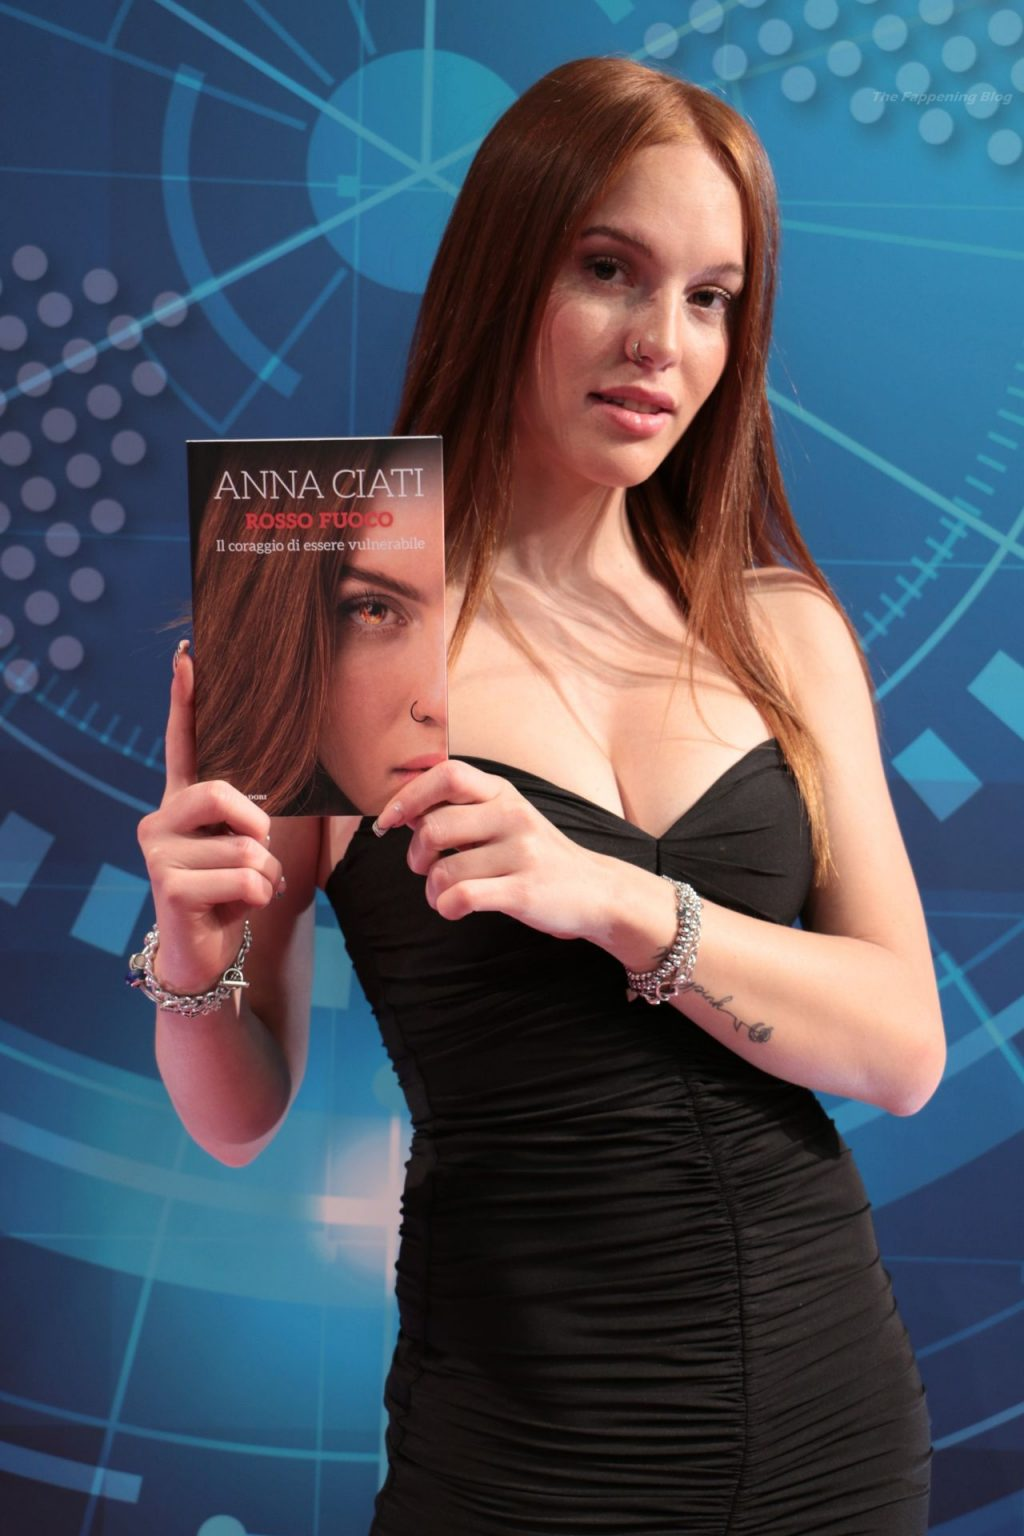 Anna Ciati Flaunts Her Young Body On TV Show (12 Photos)